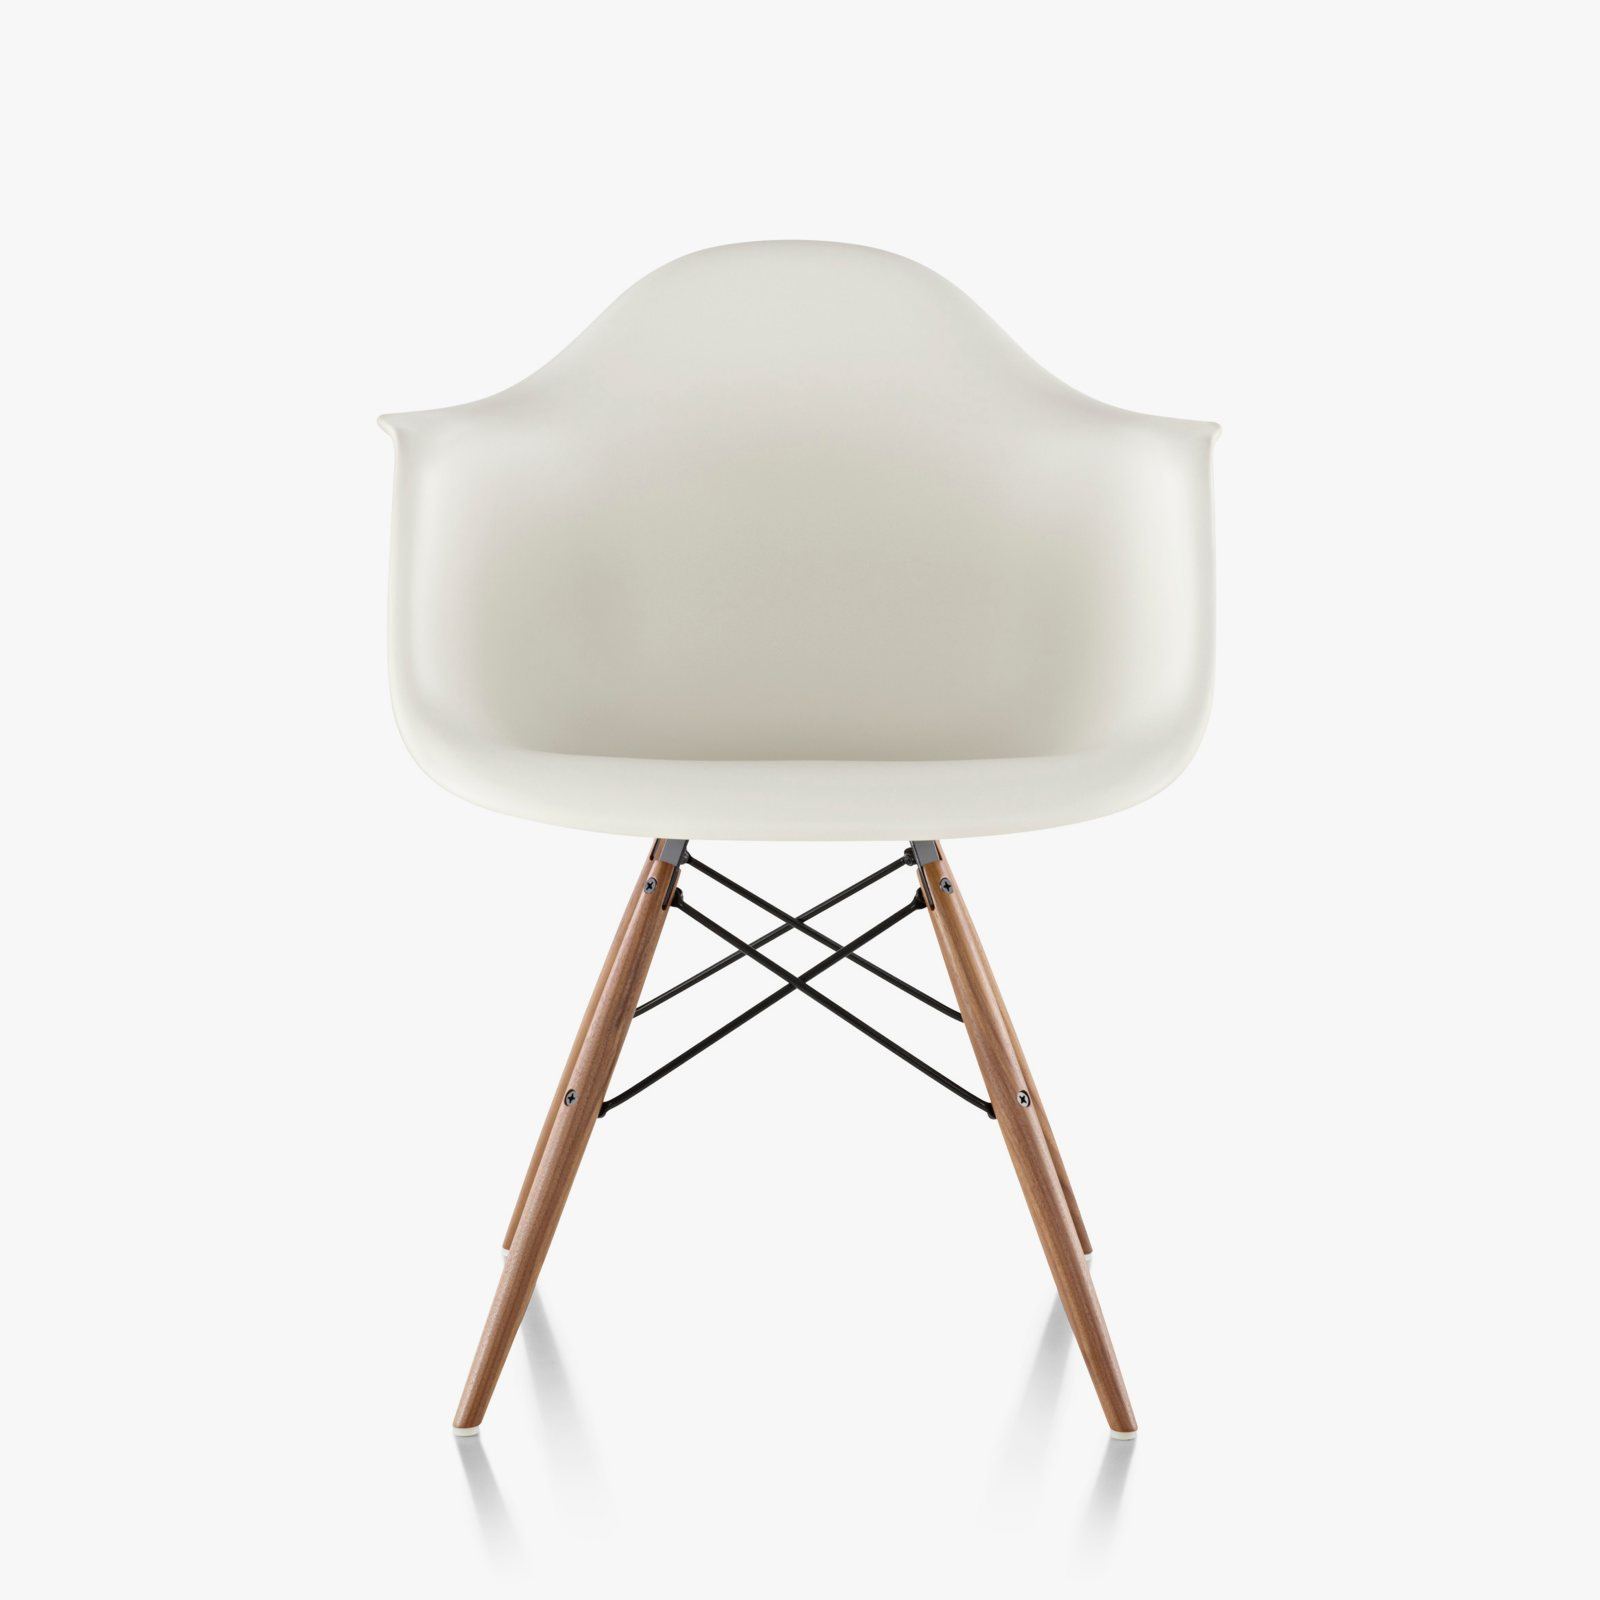 eames molded plastic armchair dowel base by charles ray eames for herman miller up interiors. Black Bedroom Furniture Sets. Home Design Ideas